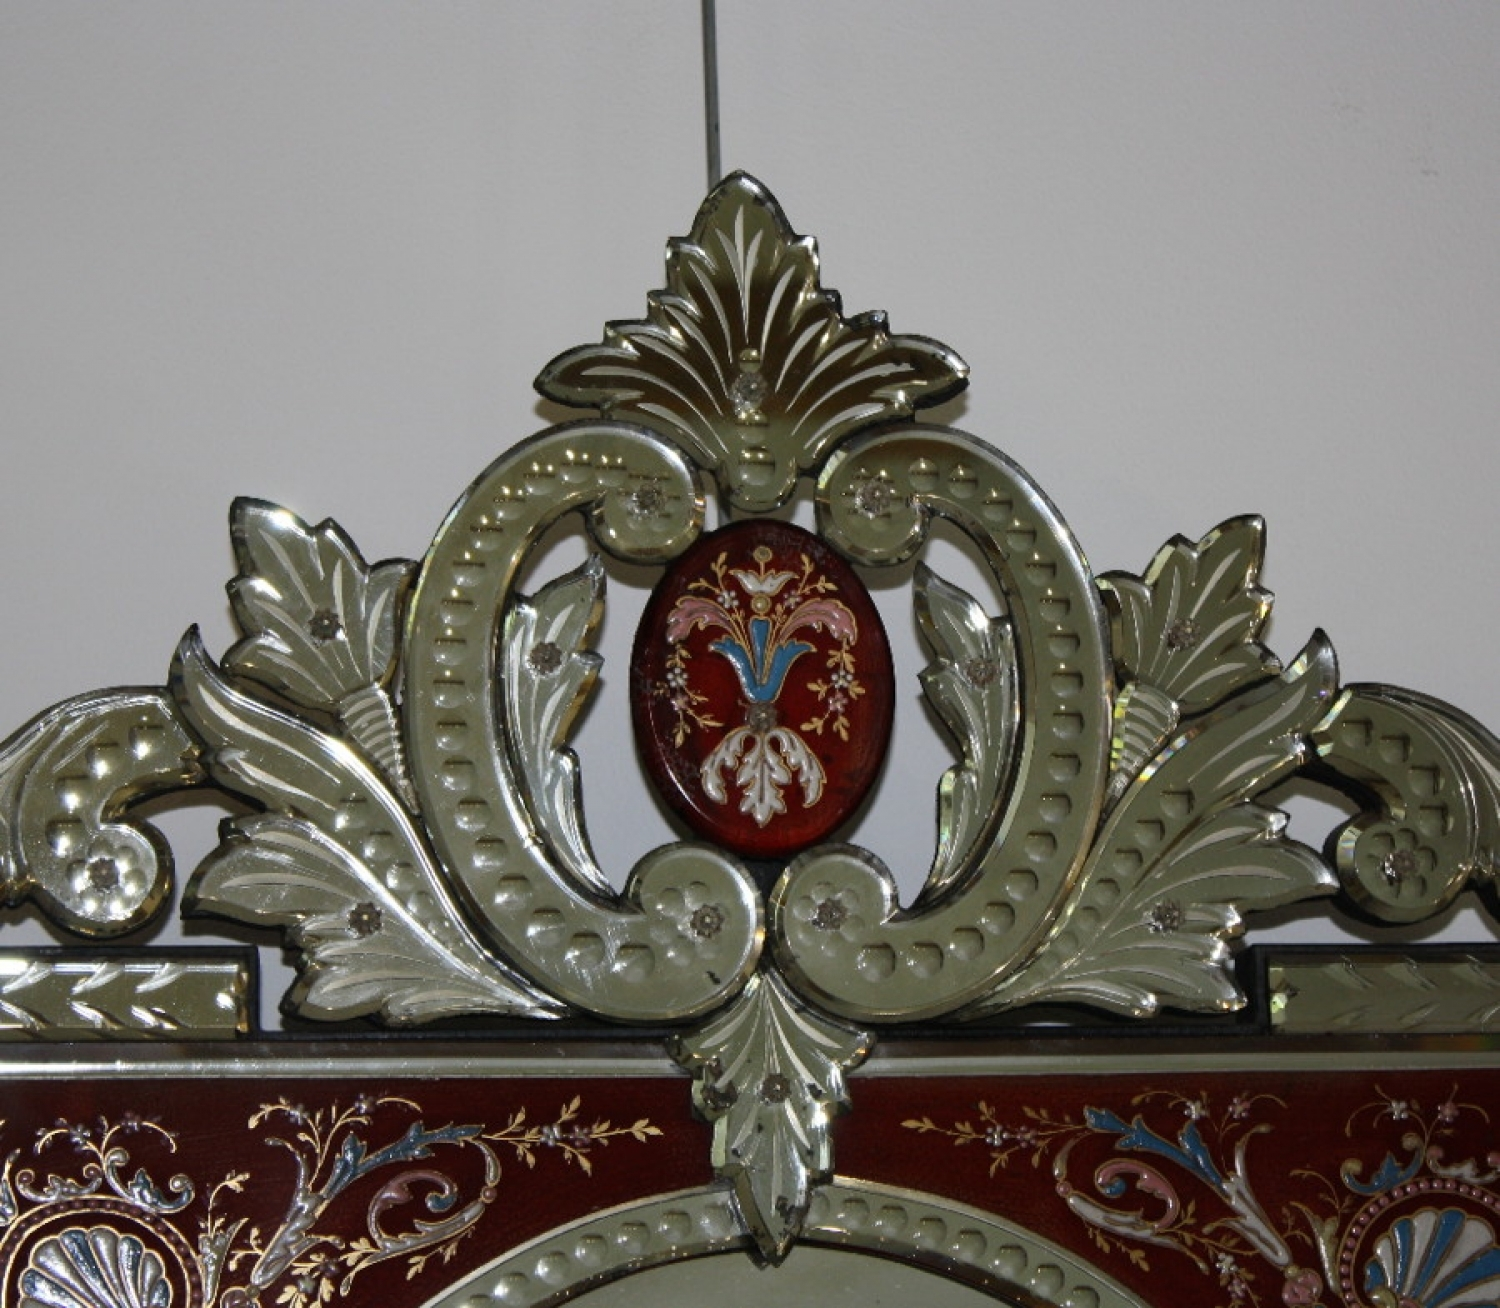 Rare Red Framed Antique Venetian Mirror With Regard To Antique Venetian Mirrors (Image 13 of 15)